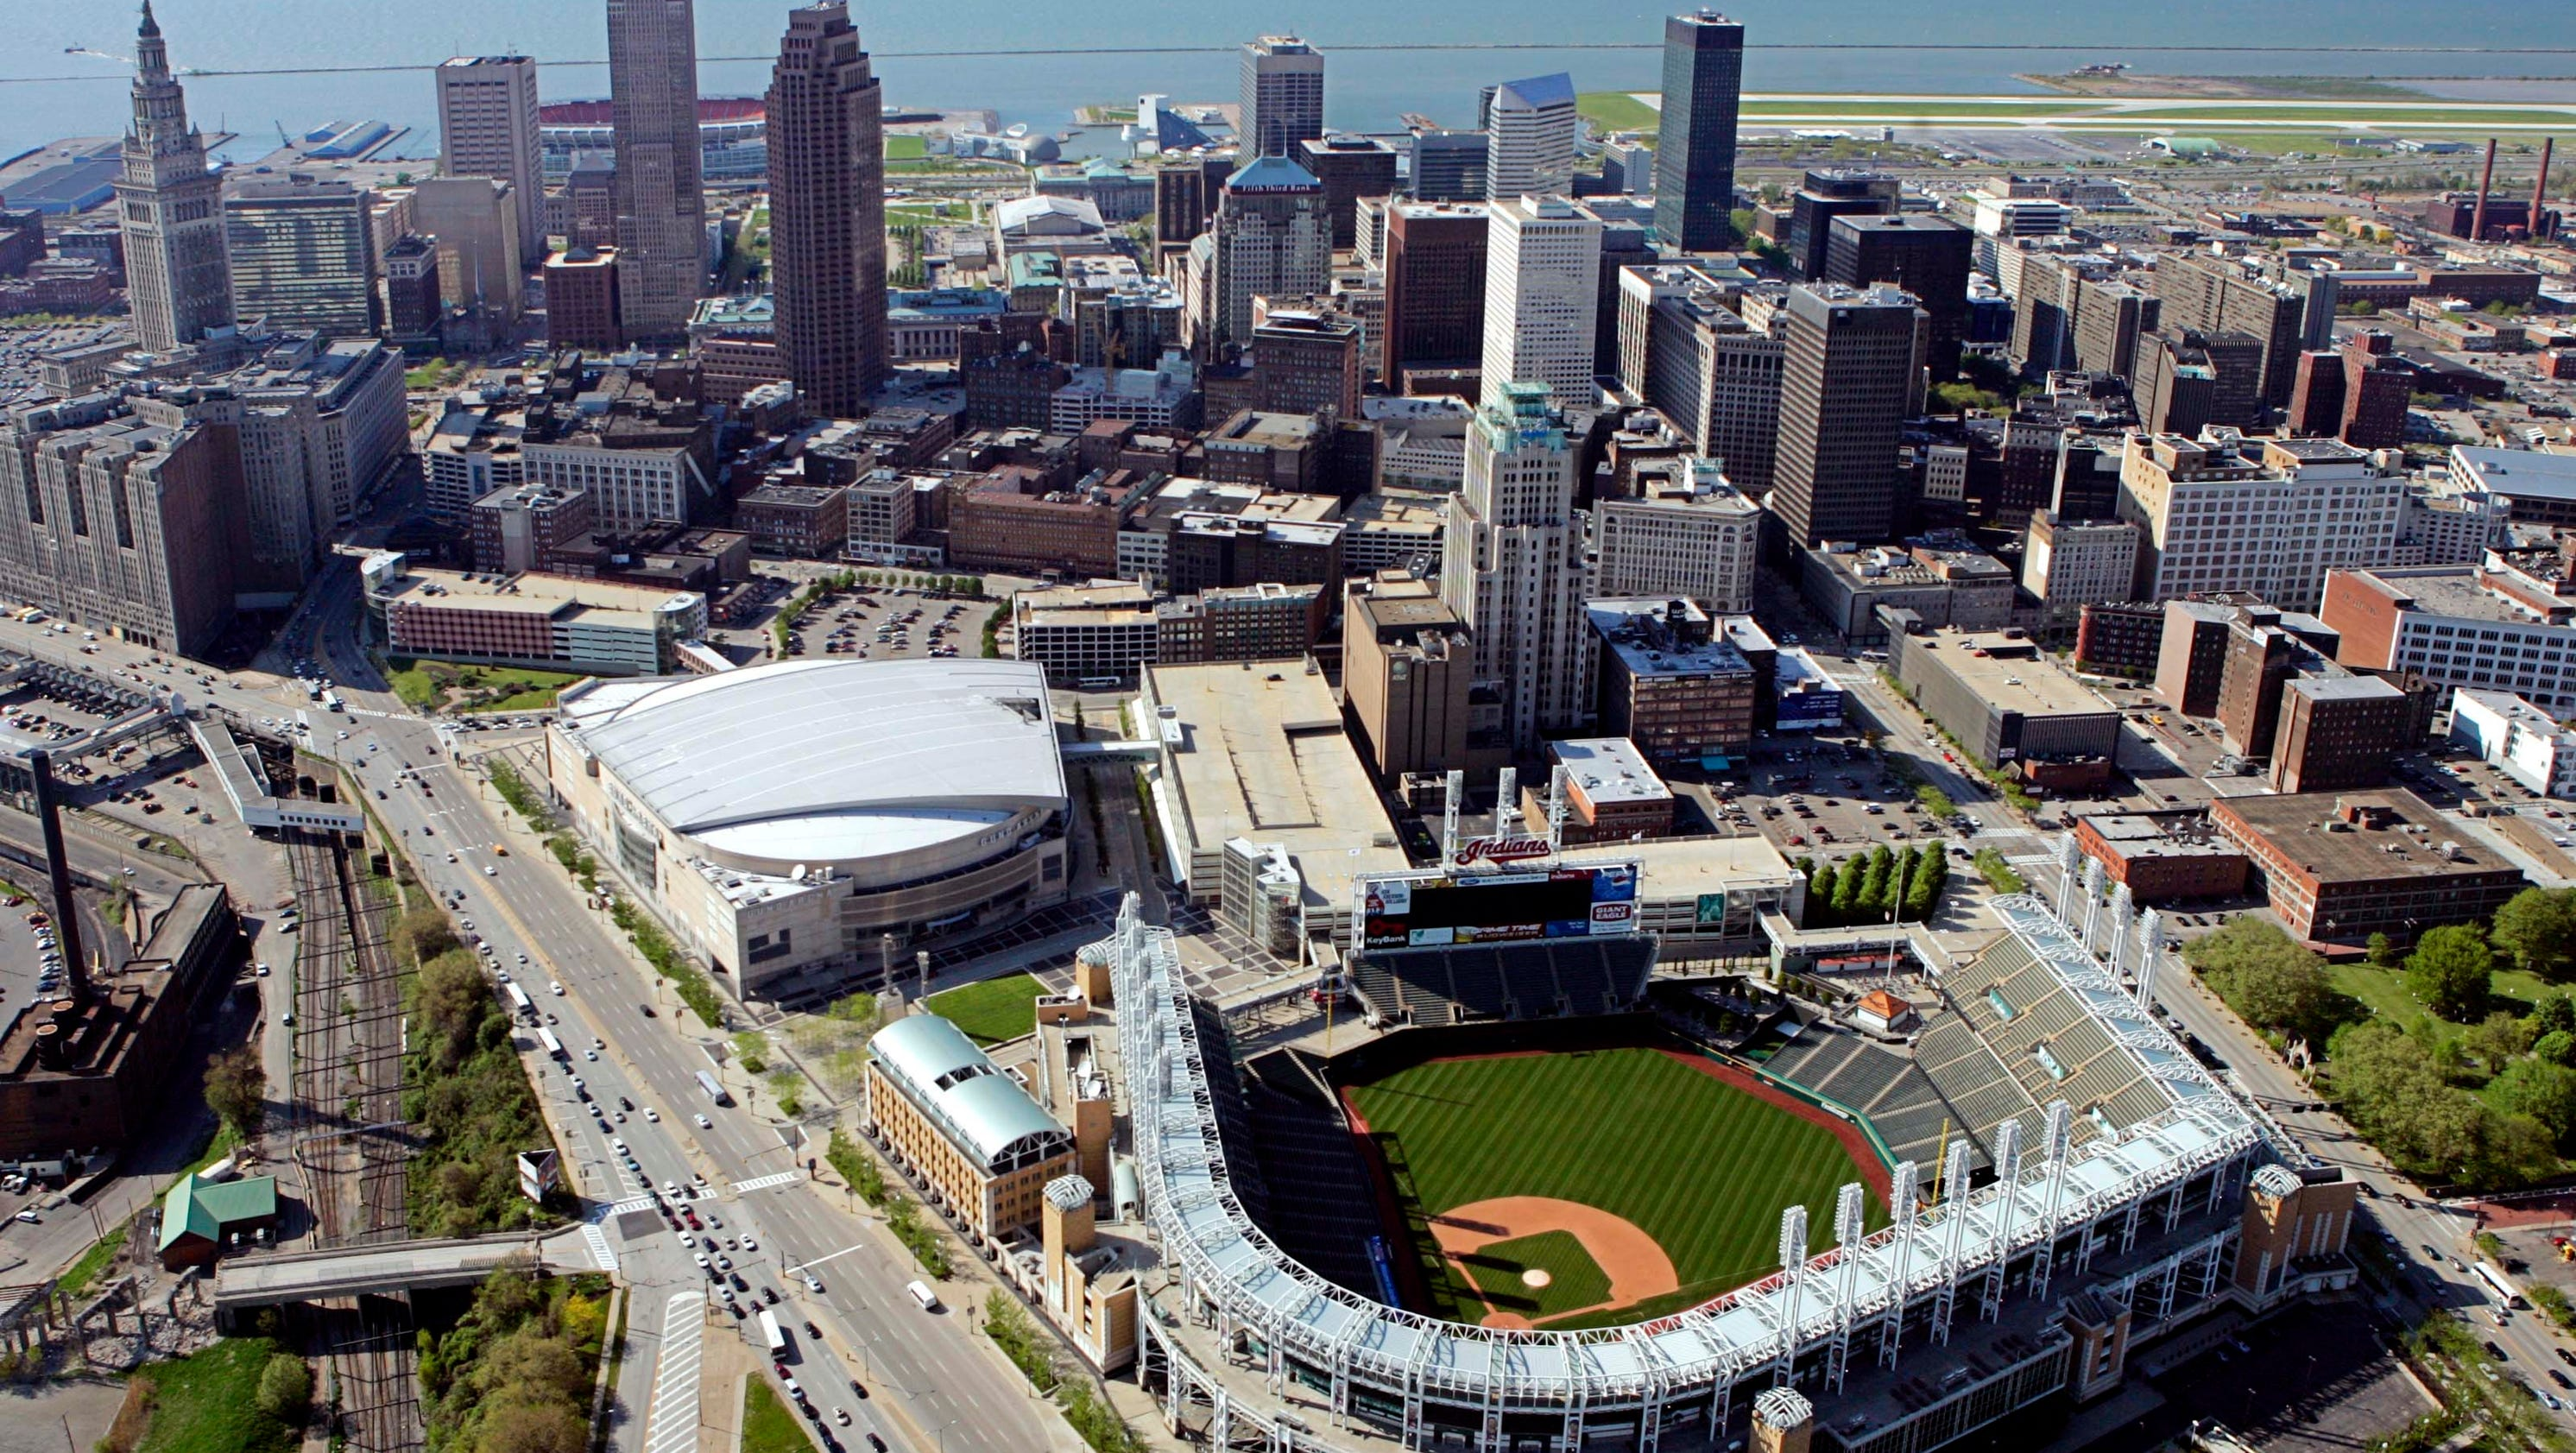 100 Michigan cops go to Cleveland for RNC security